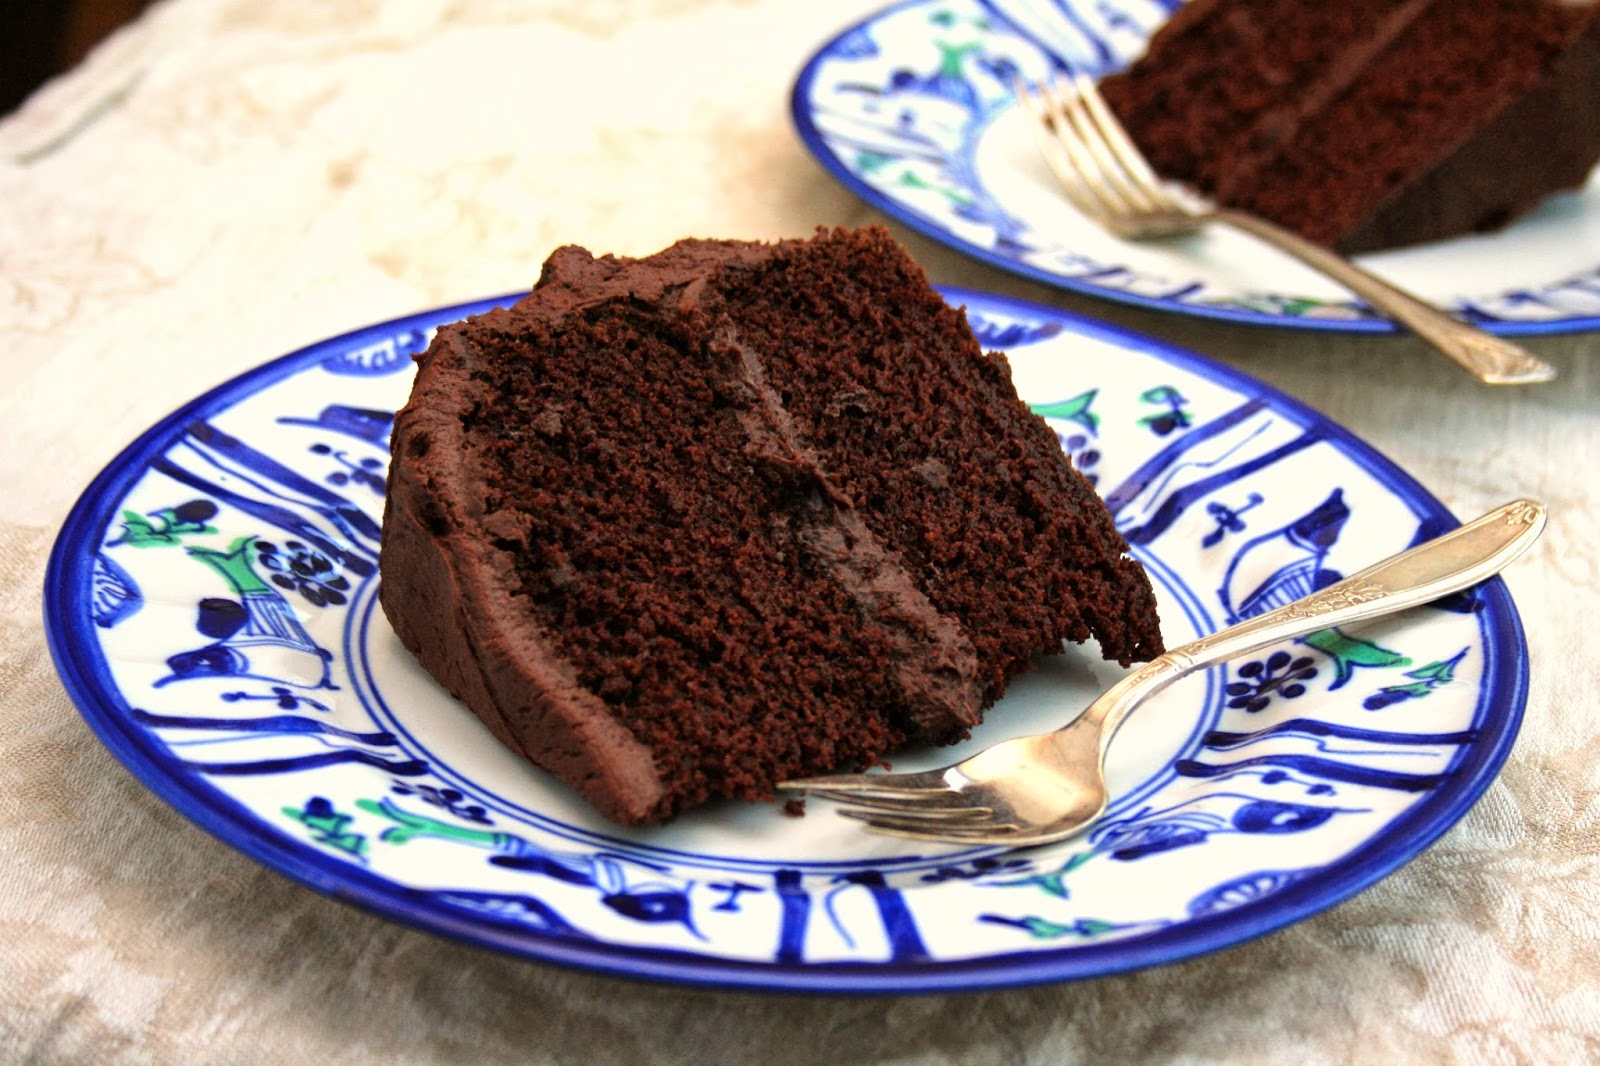 Bridget's Green Kitchen: Whole wheat chocolate cake that's eggless